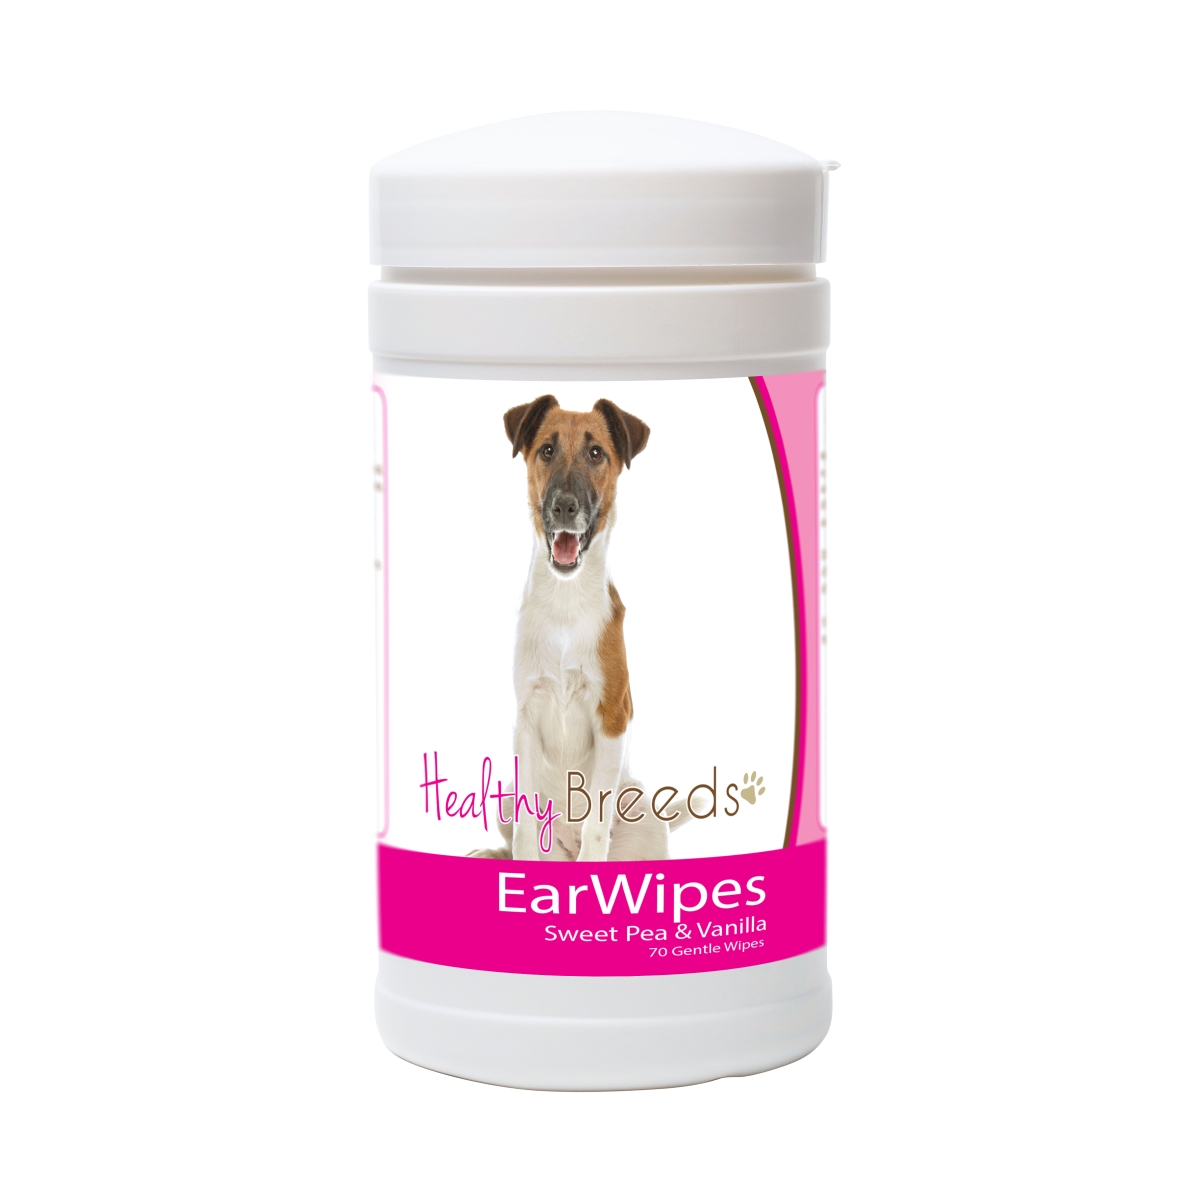 Healthy Breeds 840235171645 Smooth Fox Terrier Ear Wipes - 70 Count